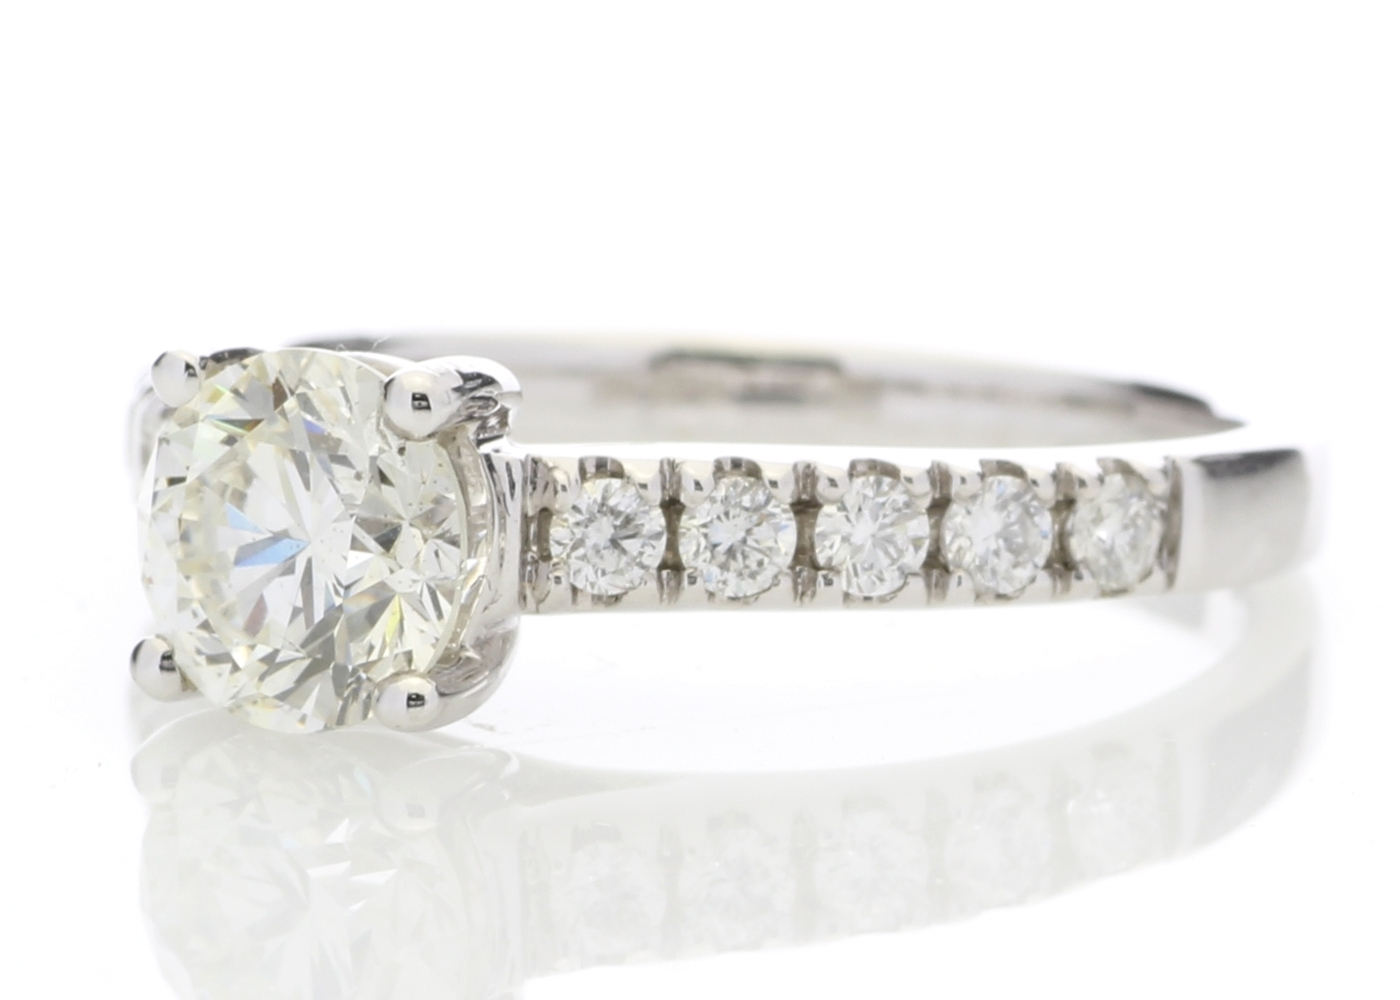 18ct White Gold Single Stone Diamond Ring With Stone Set Shoulders (1.02) 1.32 Carats - Image 2 of 5